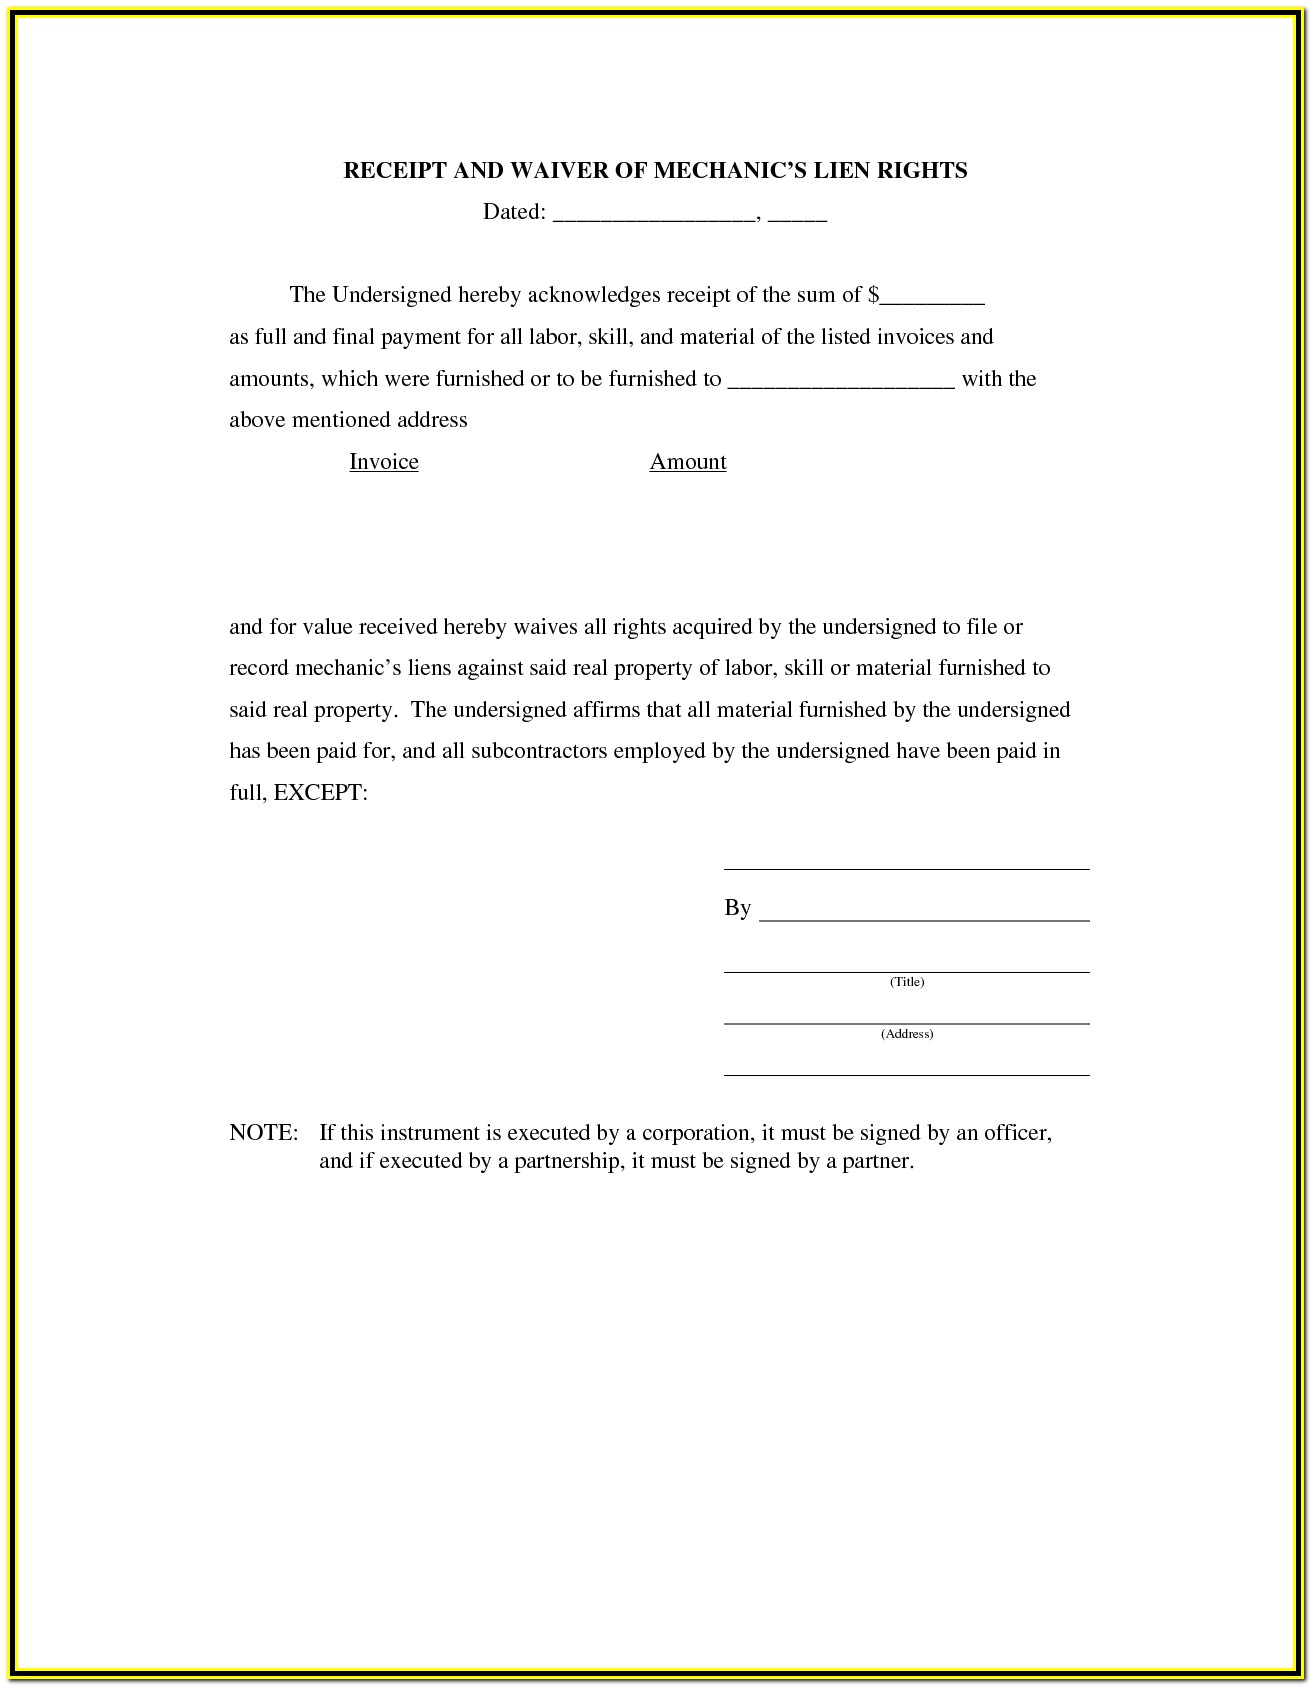 Texas Mechanics Lien Release Form